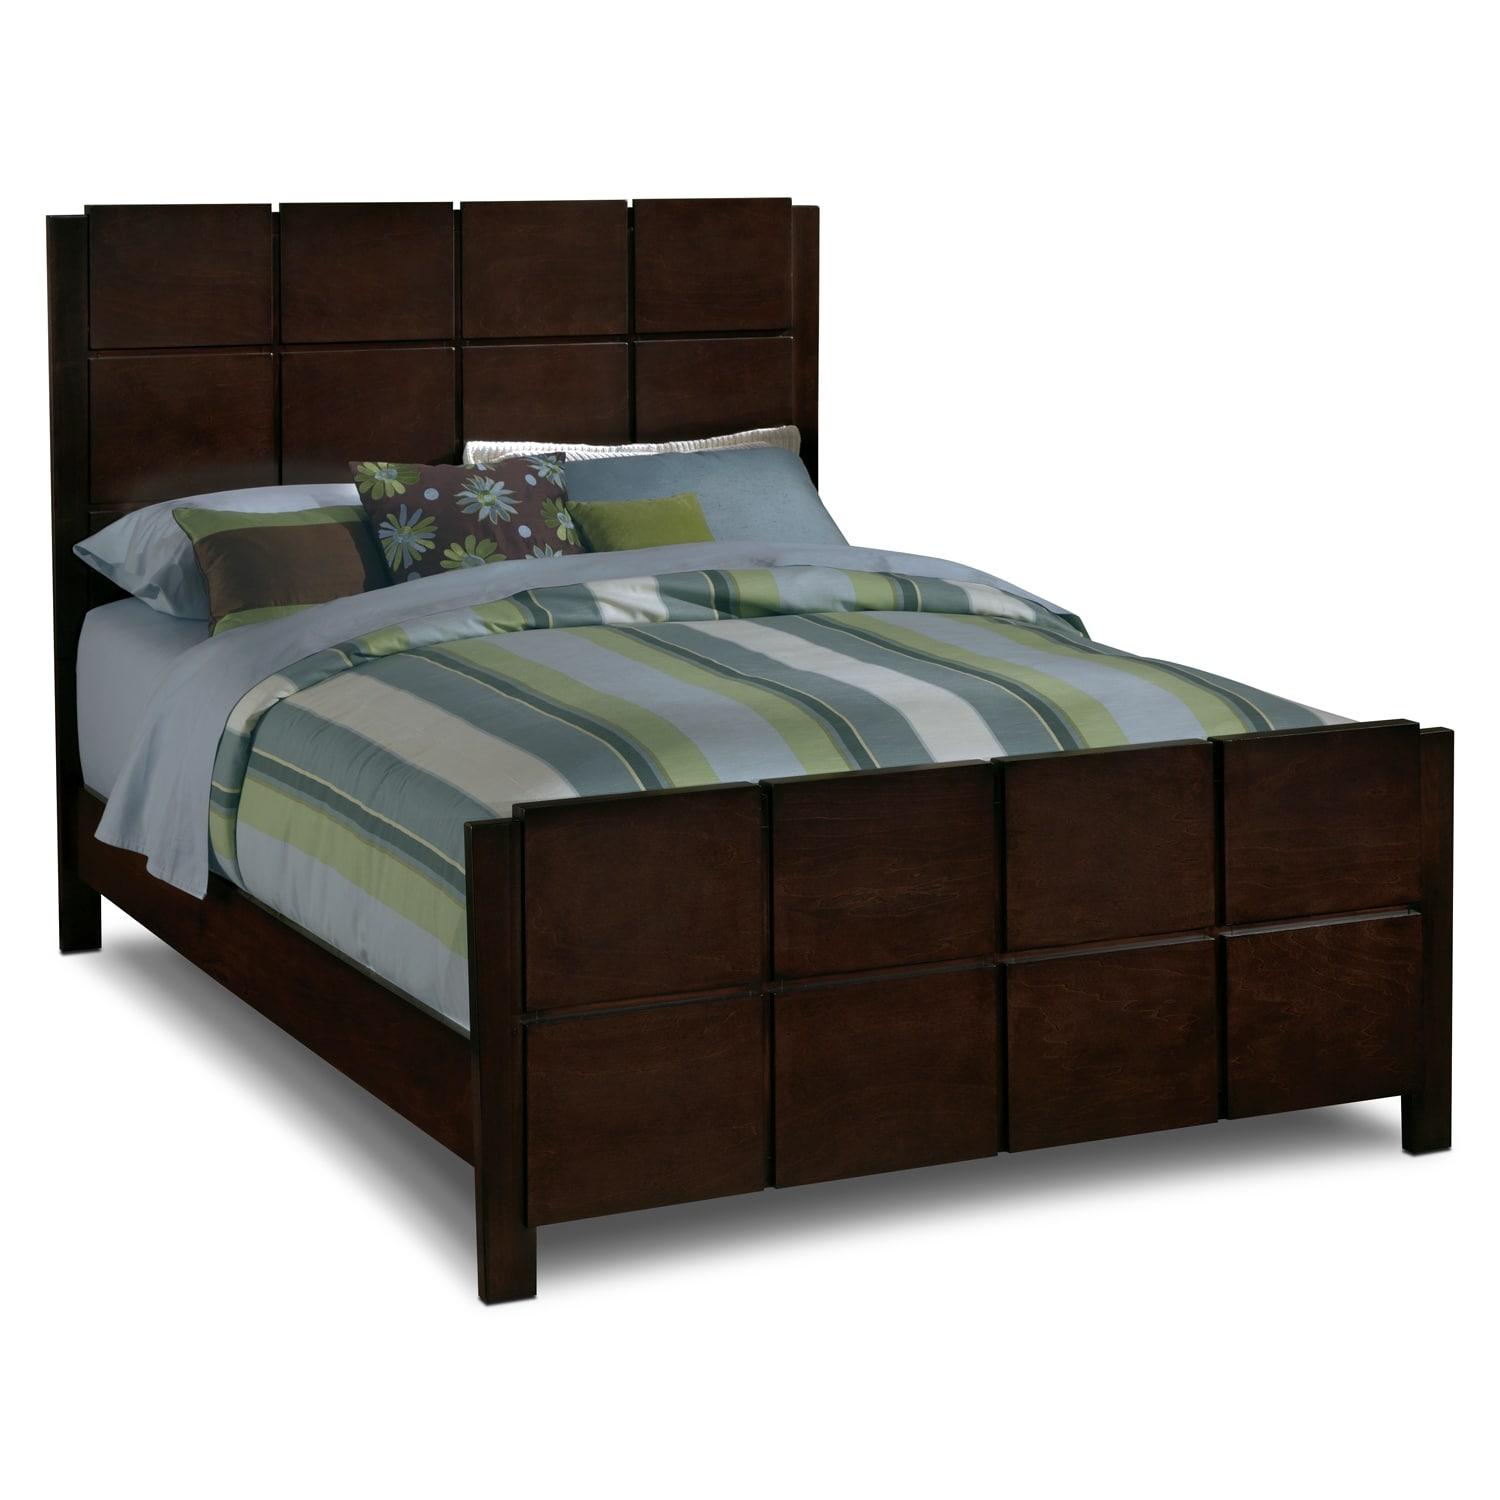 Queen Bedroom Furniture Sets Under 500 Cheap Bedroom Furniture Sets Under 500 Affordable Bedroom